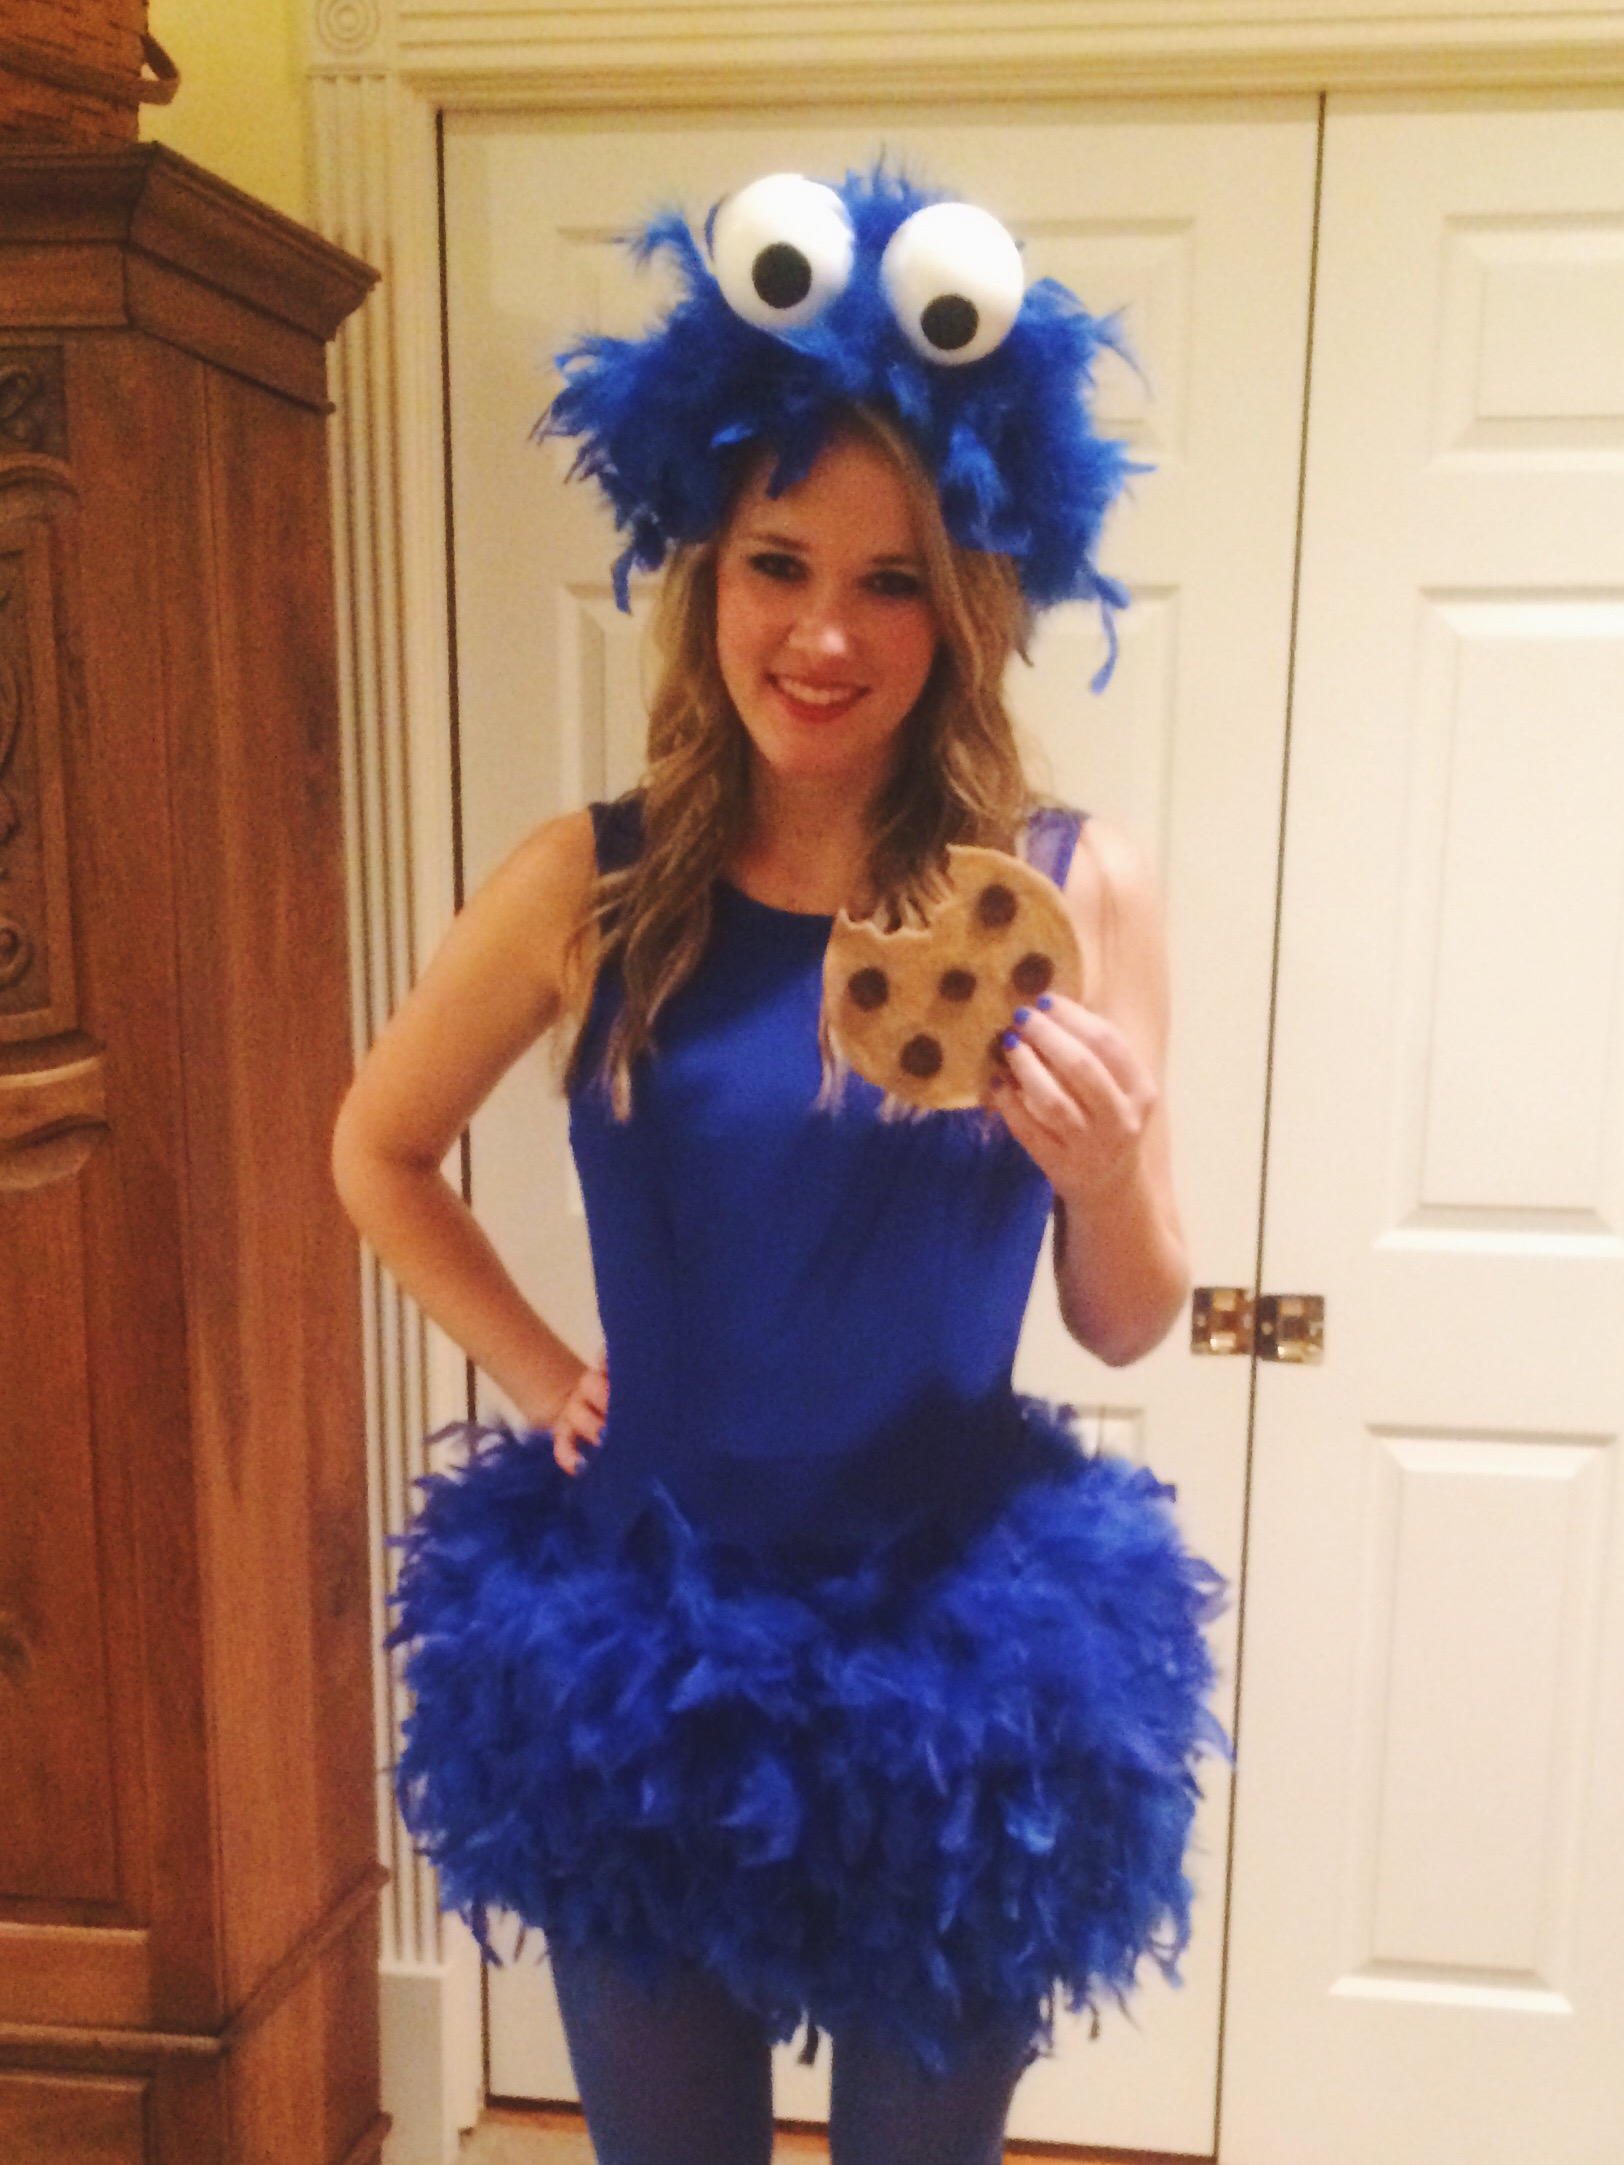 sc 1 st  A Bit of Sweet and Color & DIY cookie monster costume